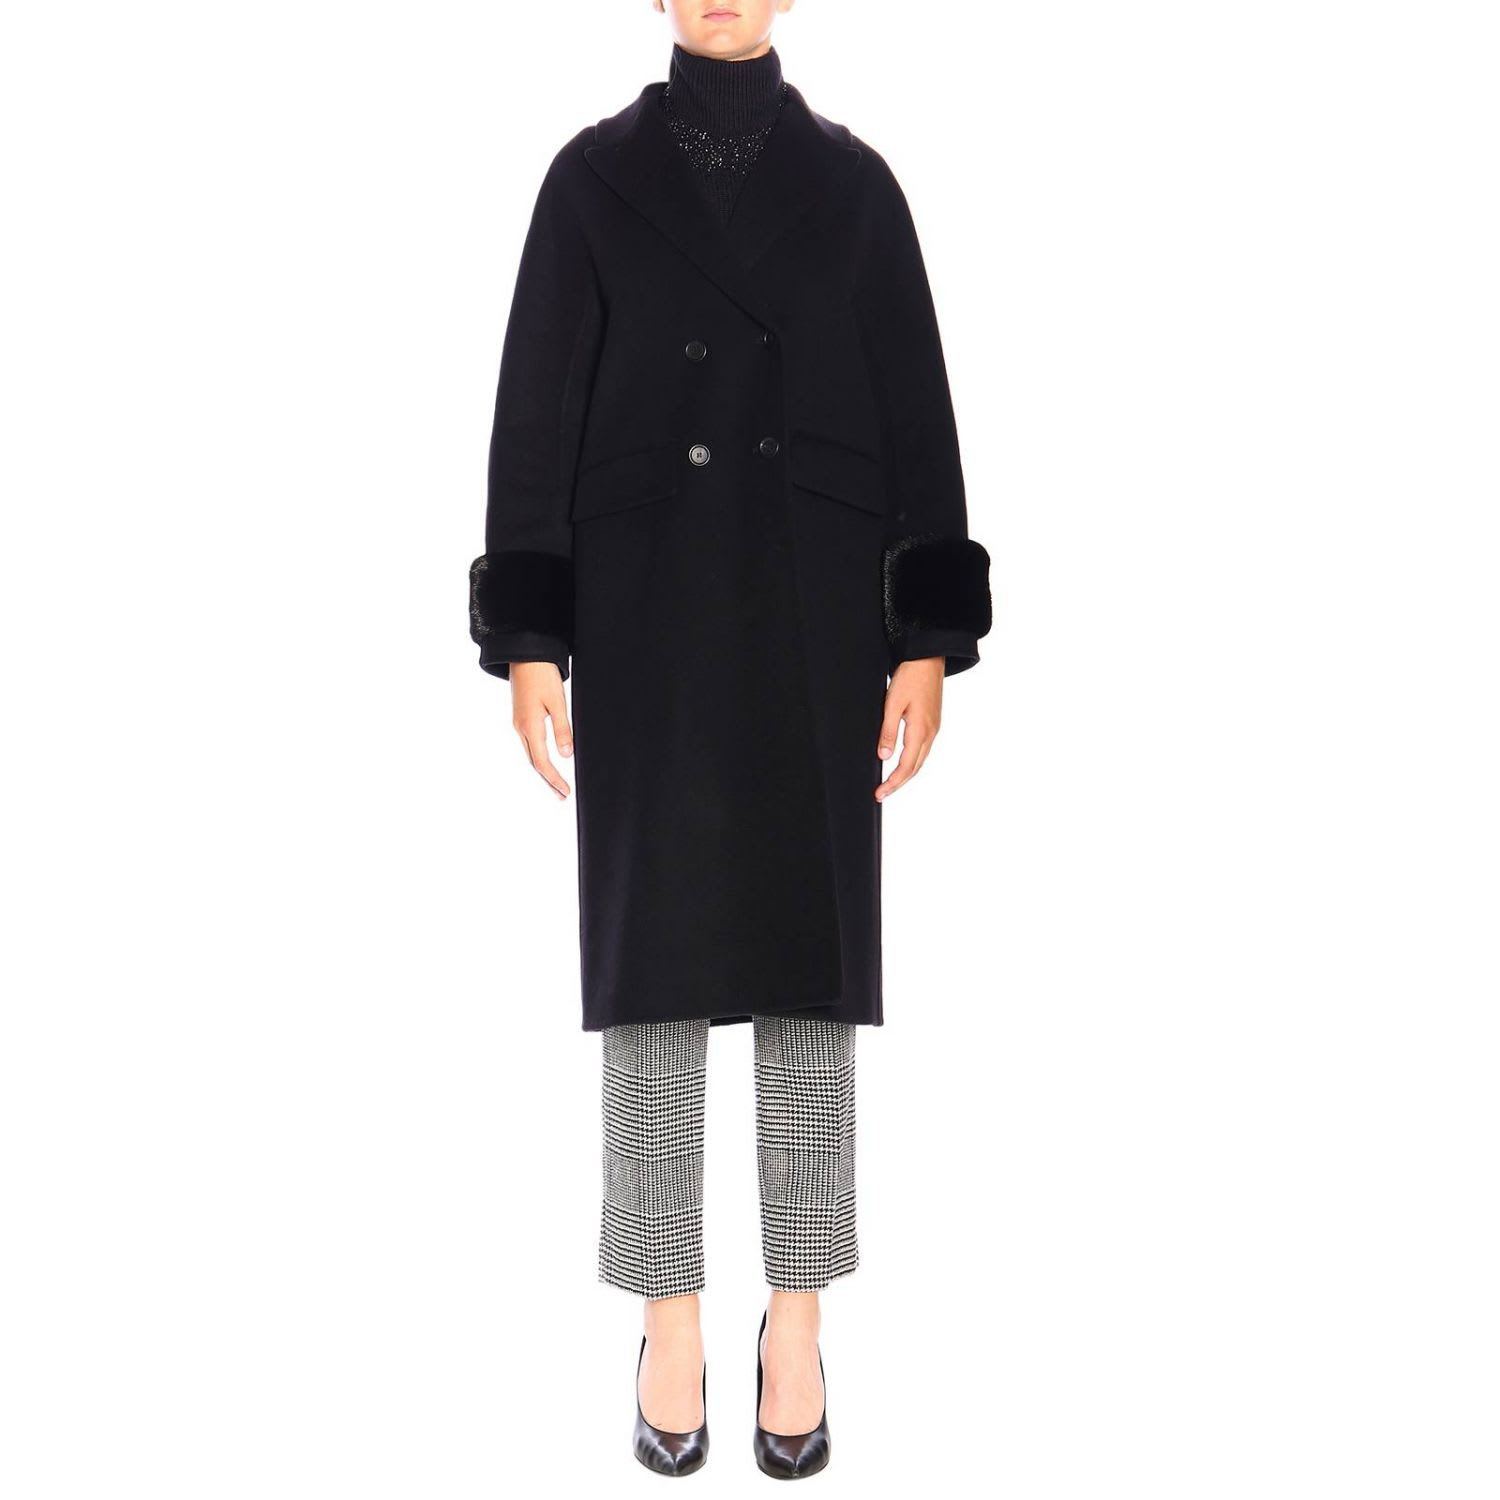 Photo of  Ermanno Scervino Coat Coat Women Ermanno Scervino- shop Ermanno Scervino jackets online sales